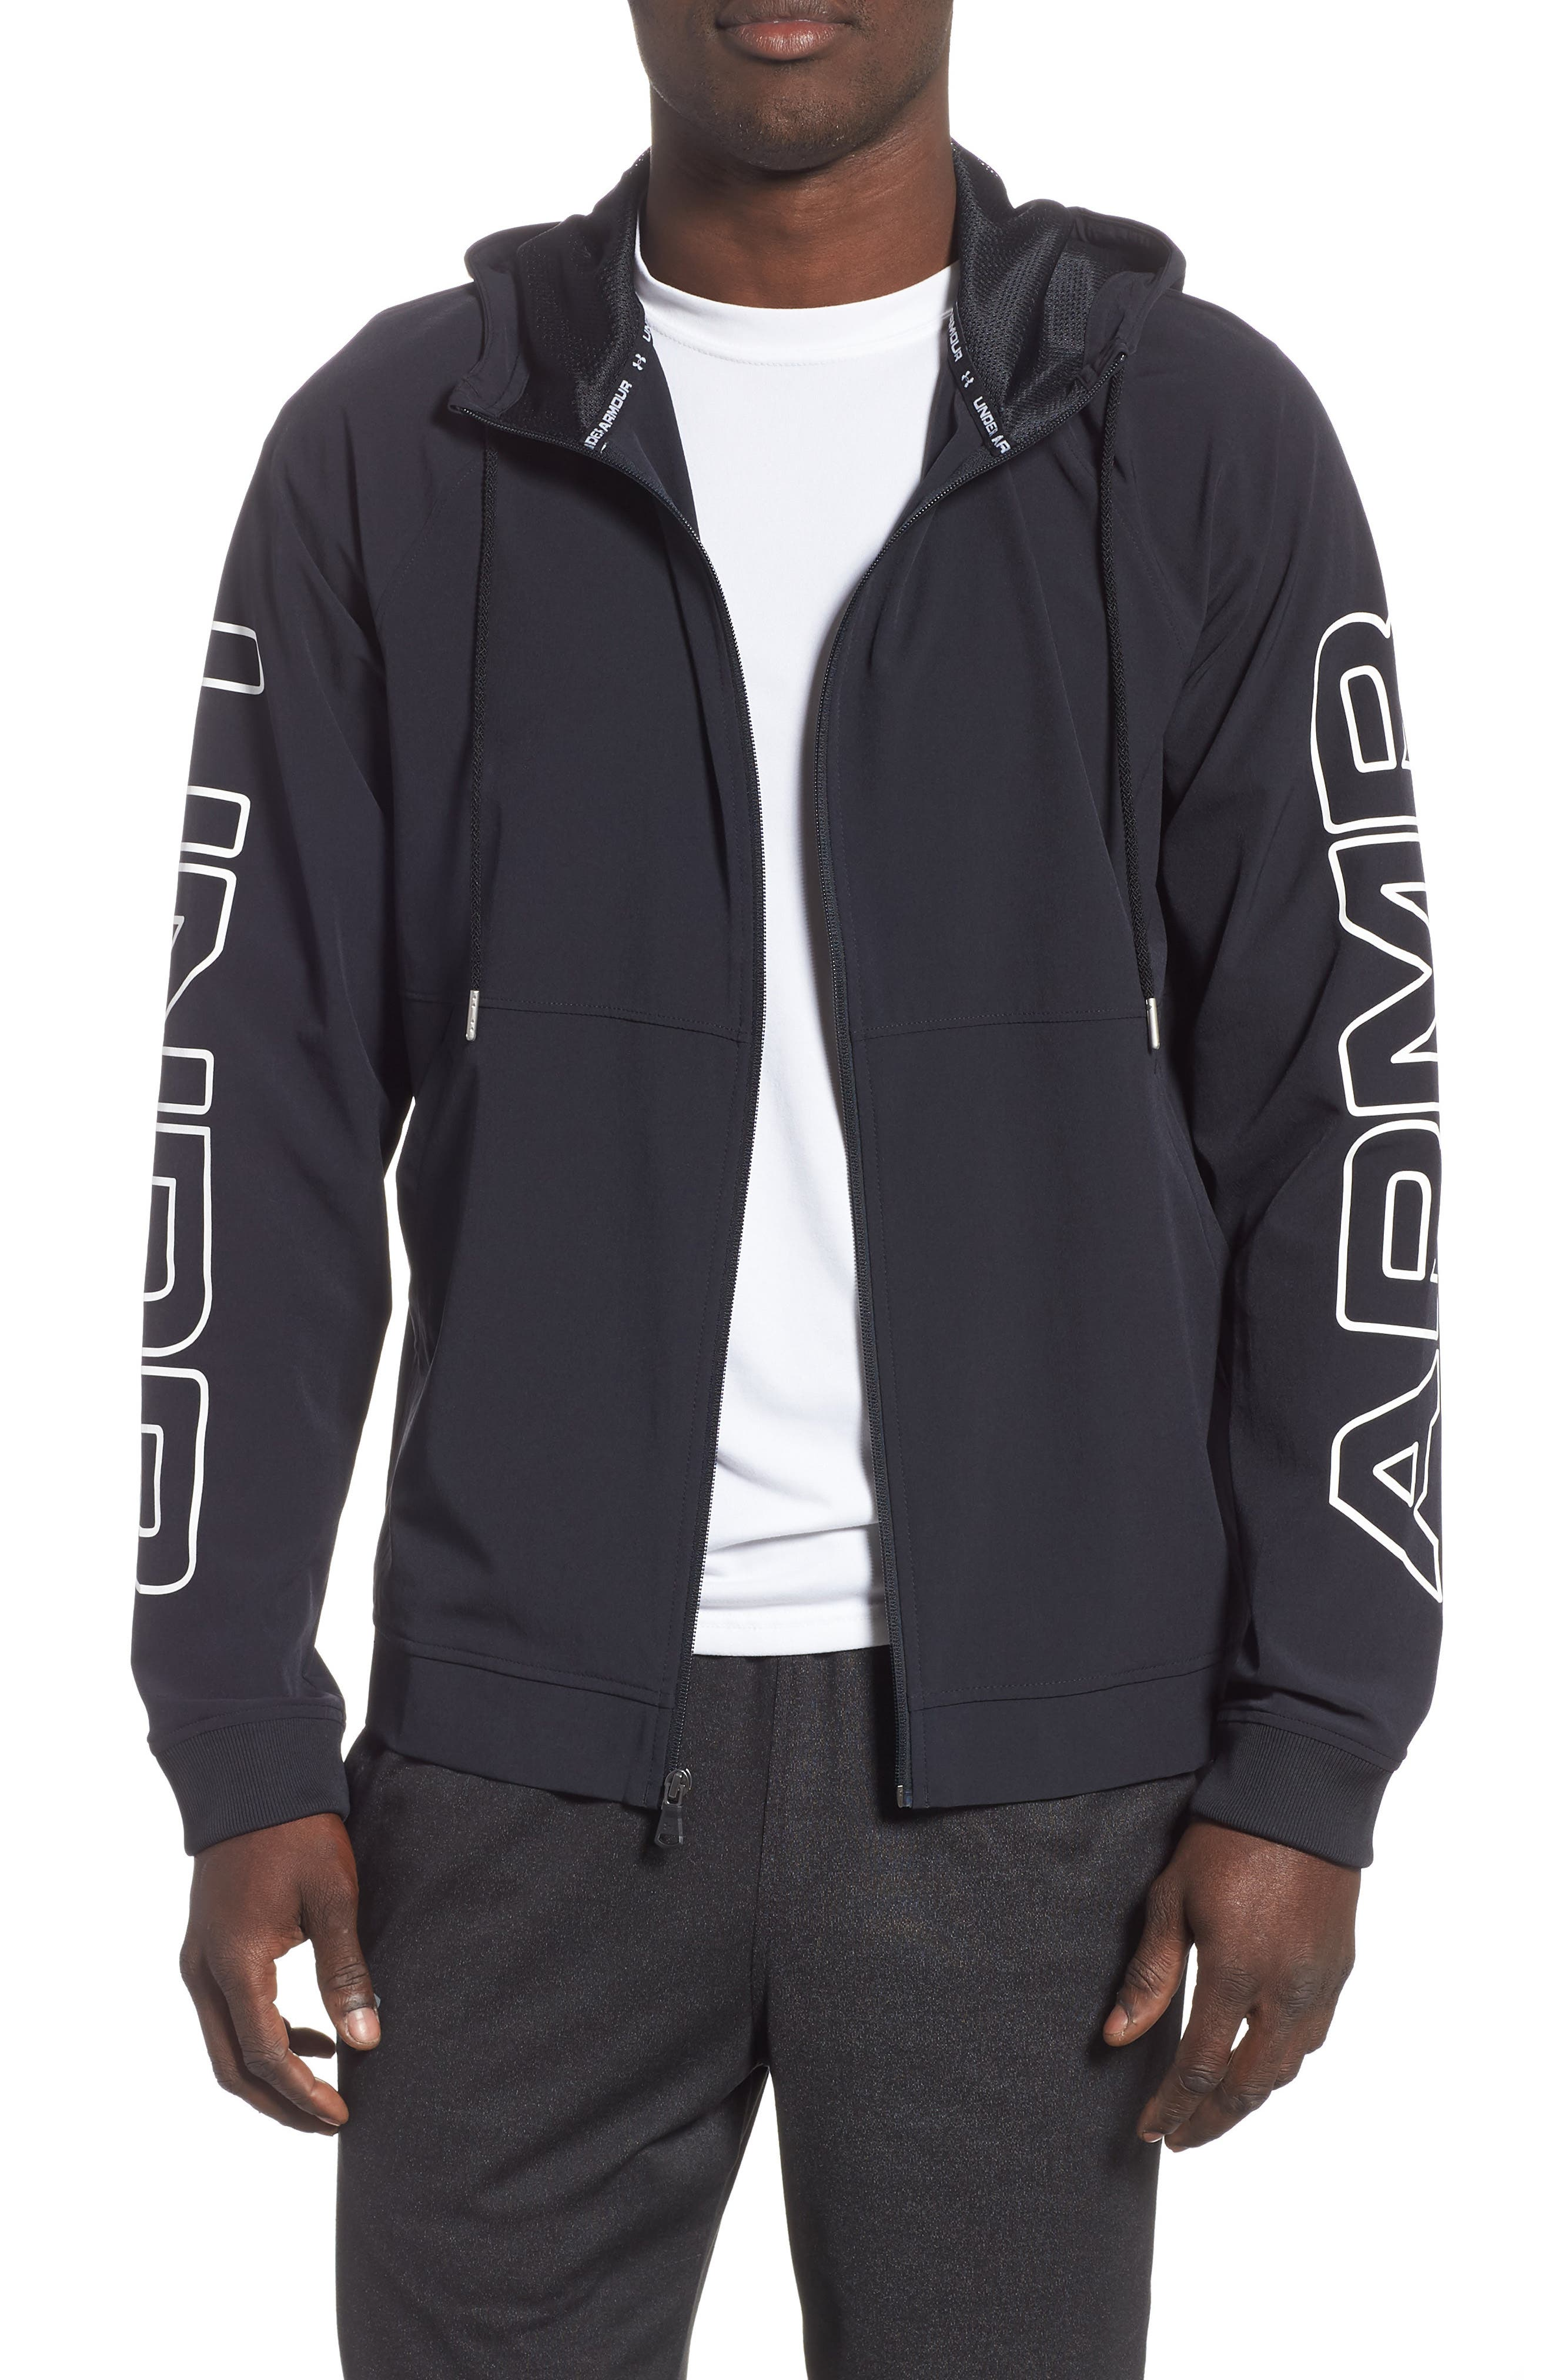 UNDER ARMOUR, Baseline Hooded Jacket, Main thumbnail 1, color, 001